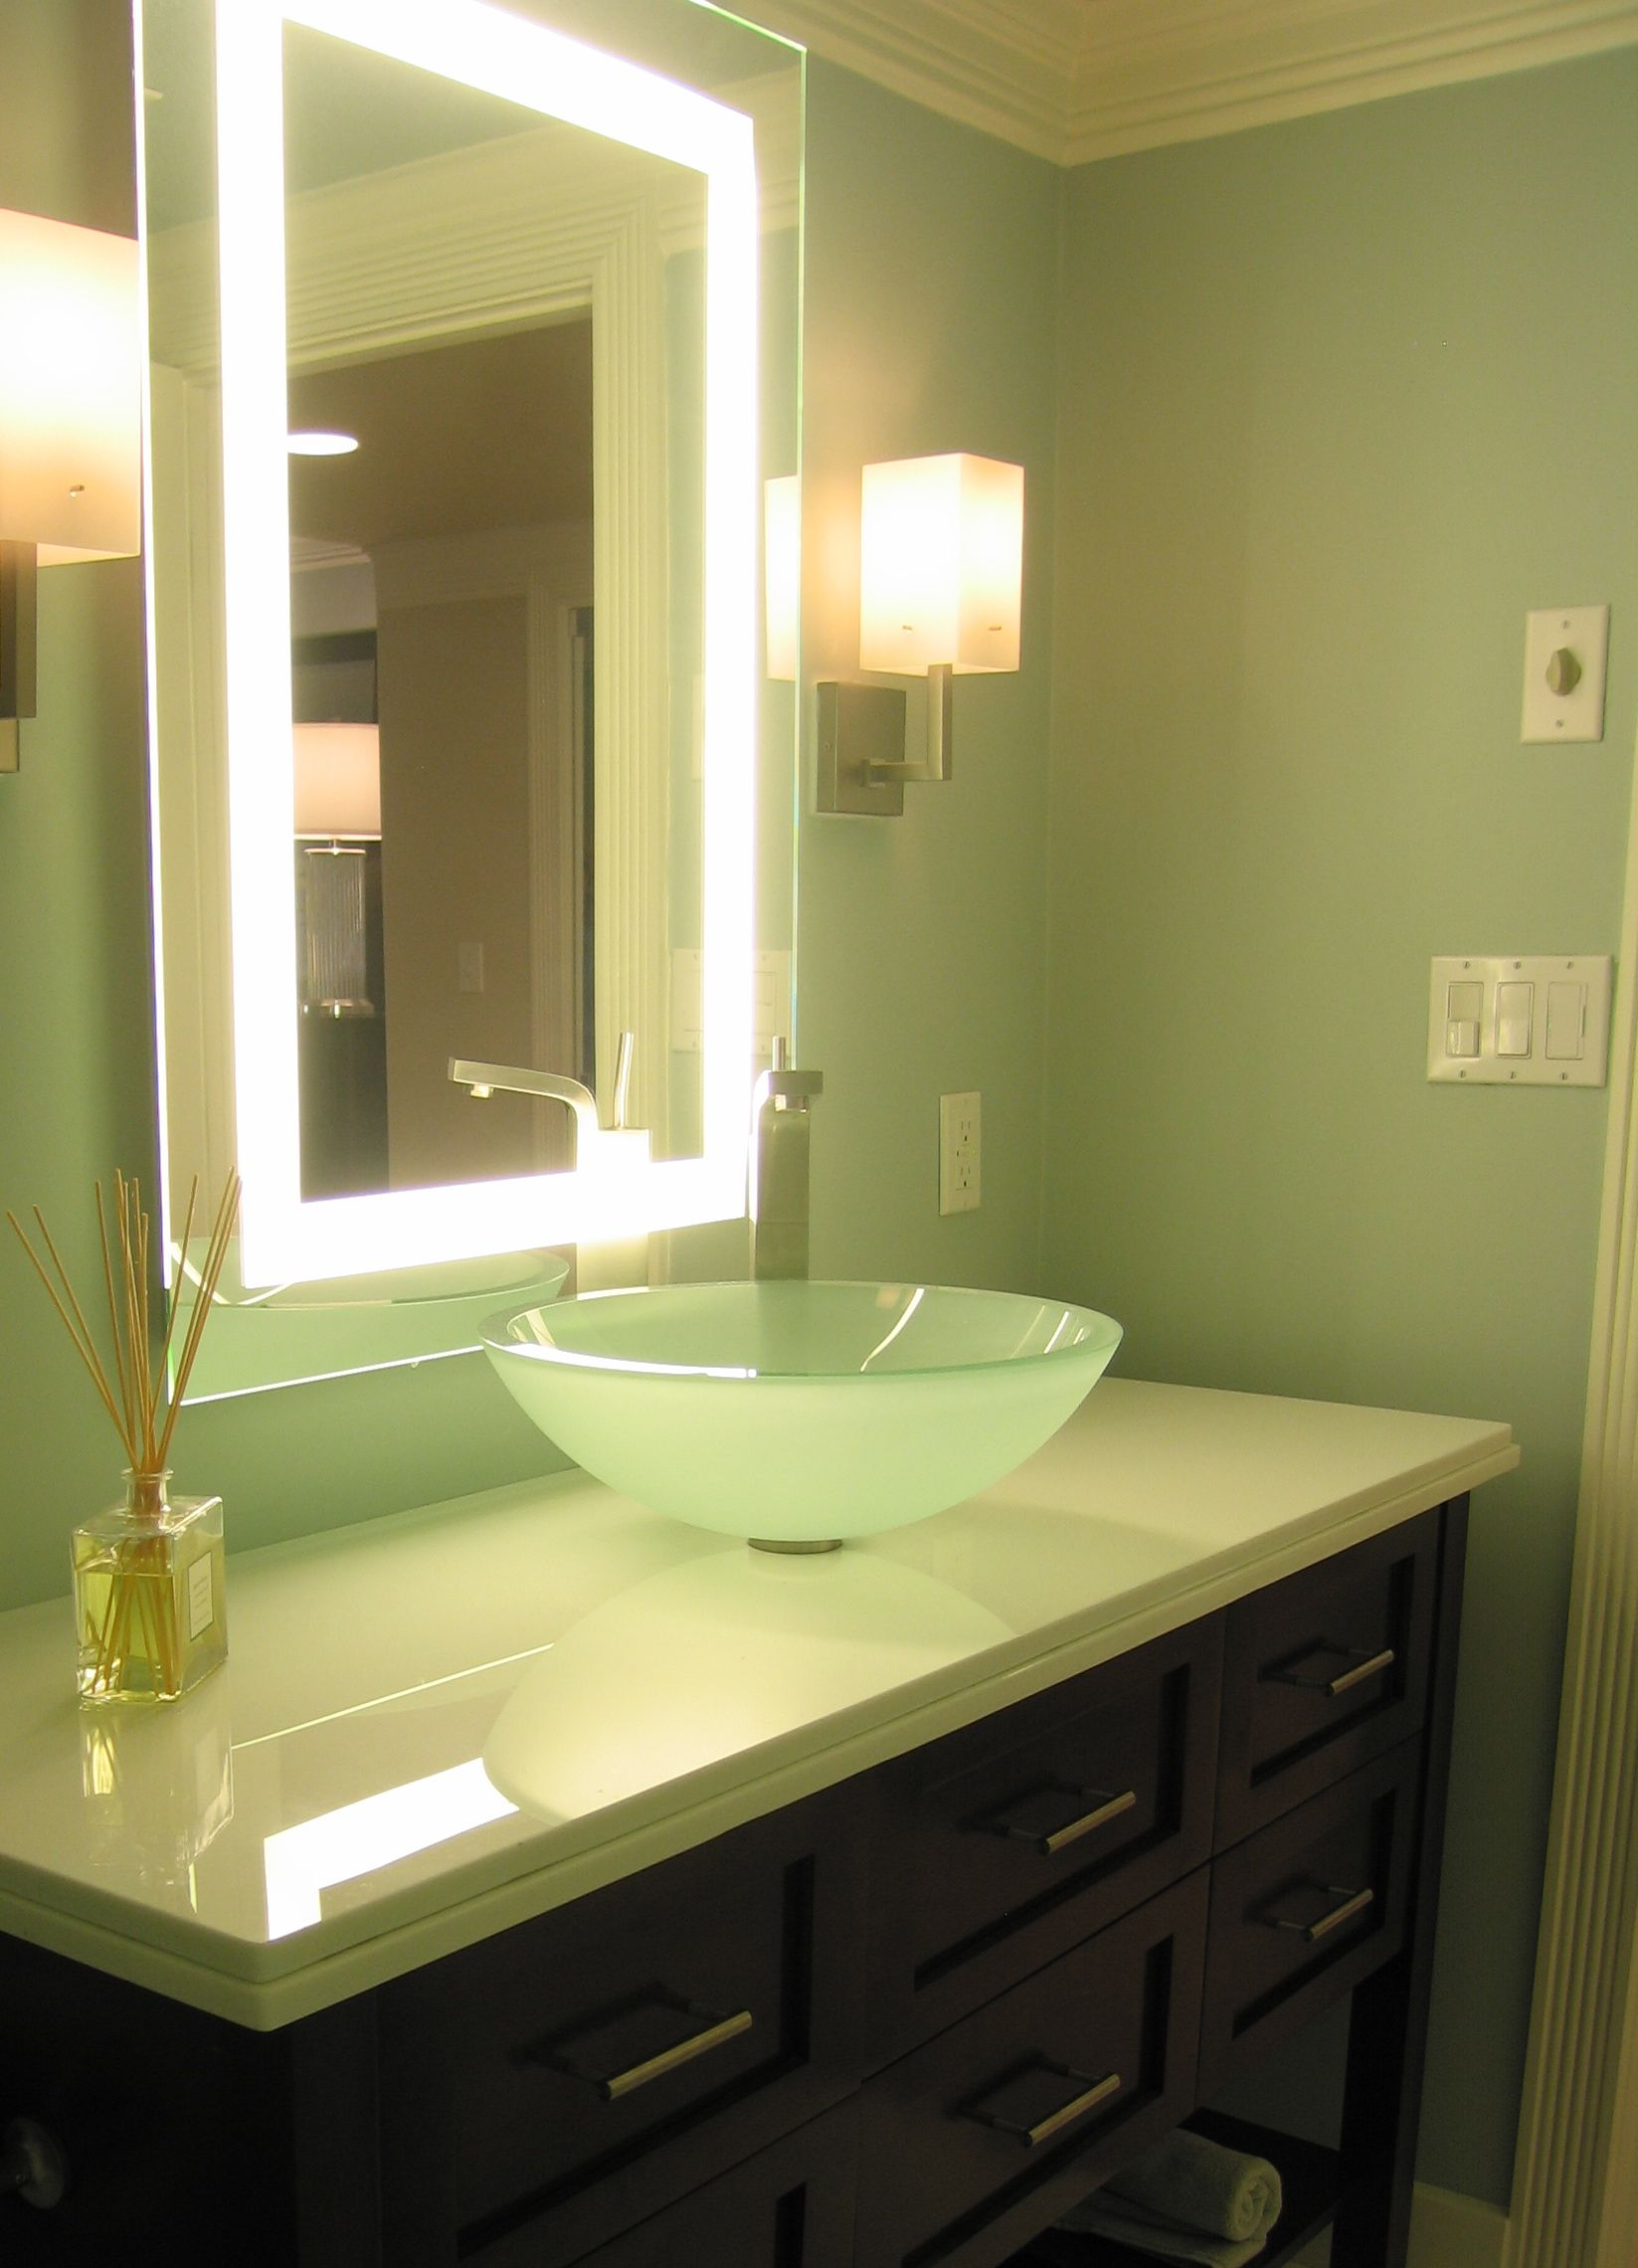 Benefits of Remodeling Bathrooms | Soothing colors, Glass vessel ...